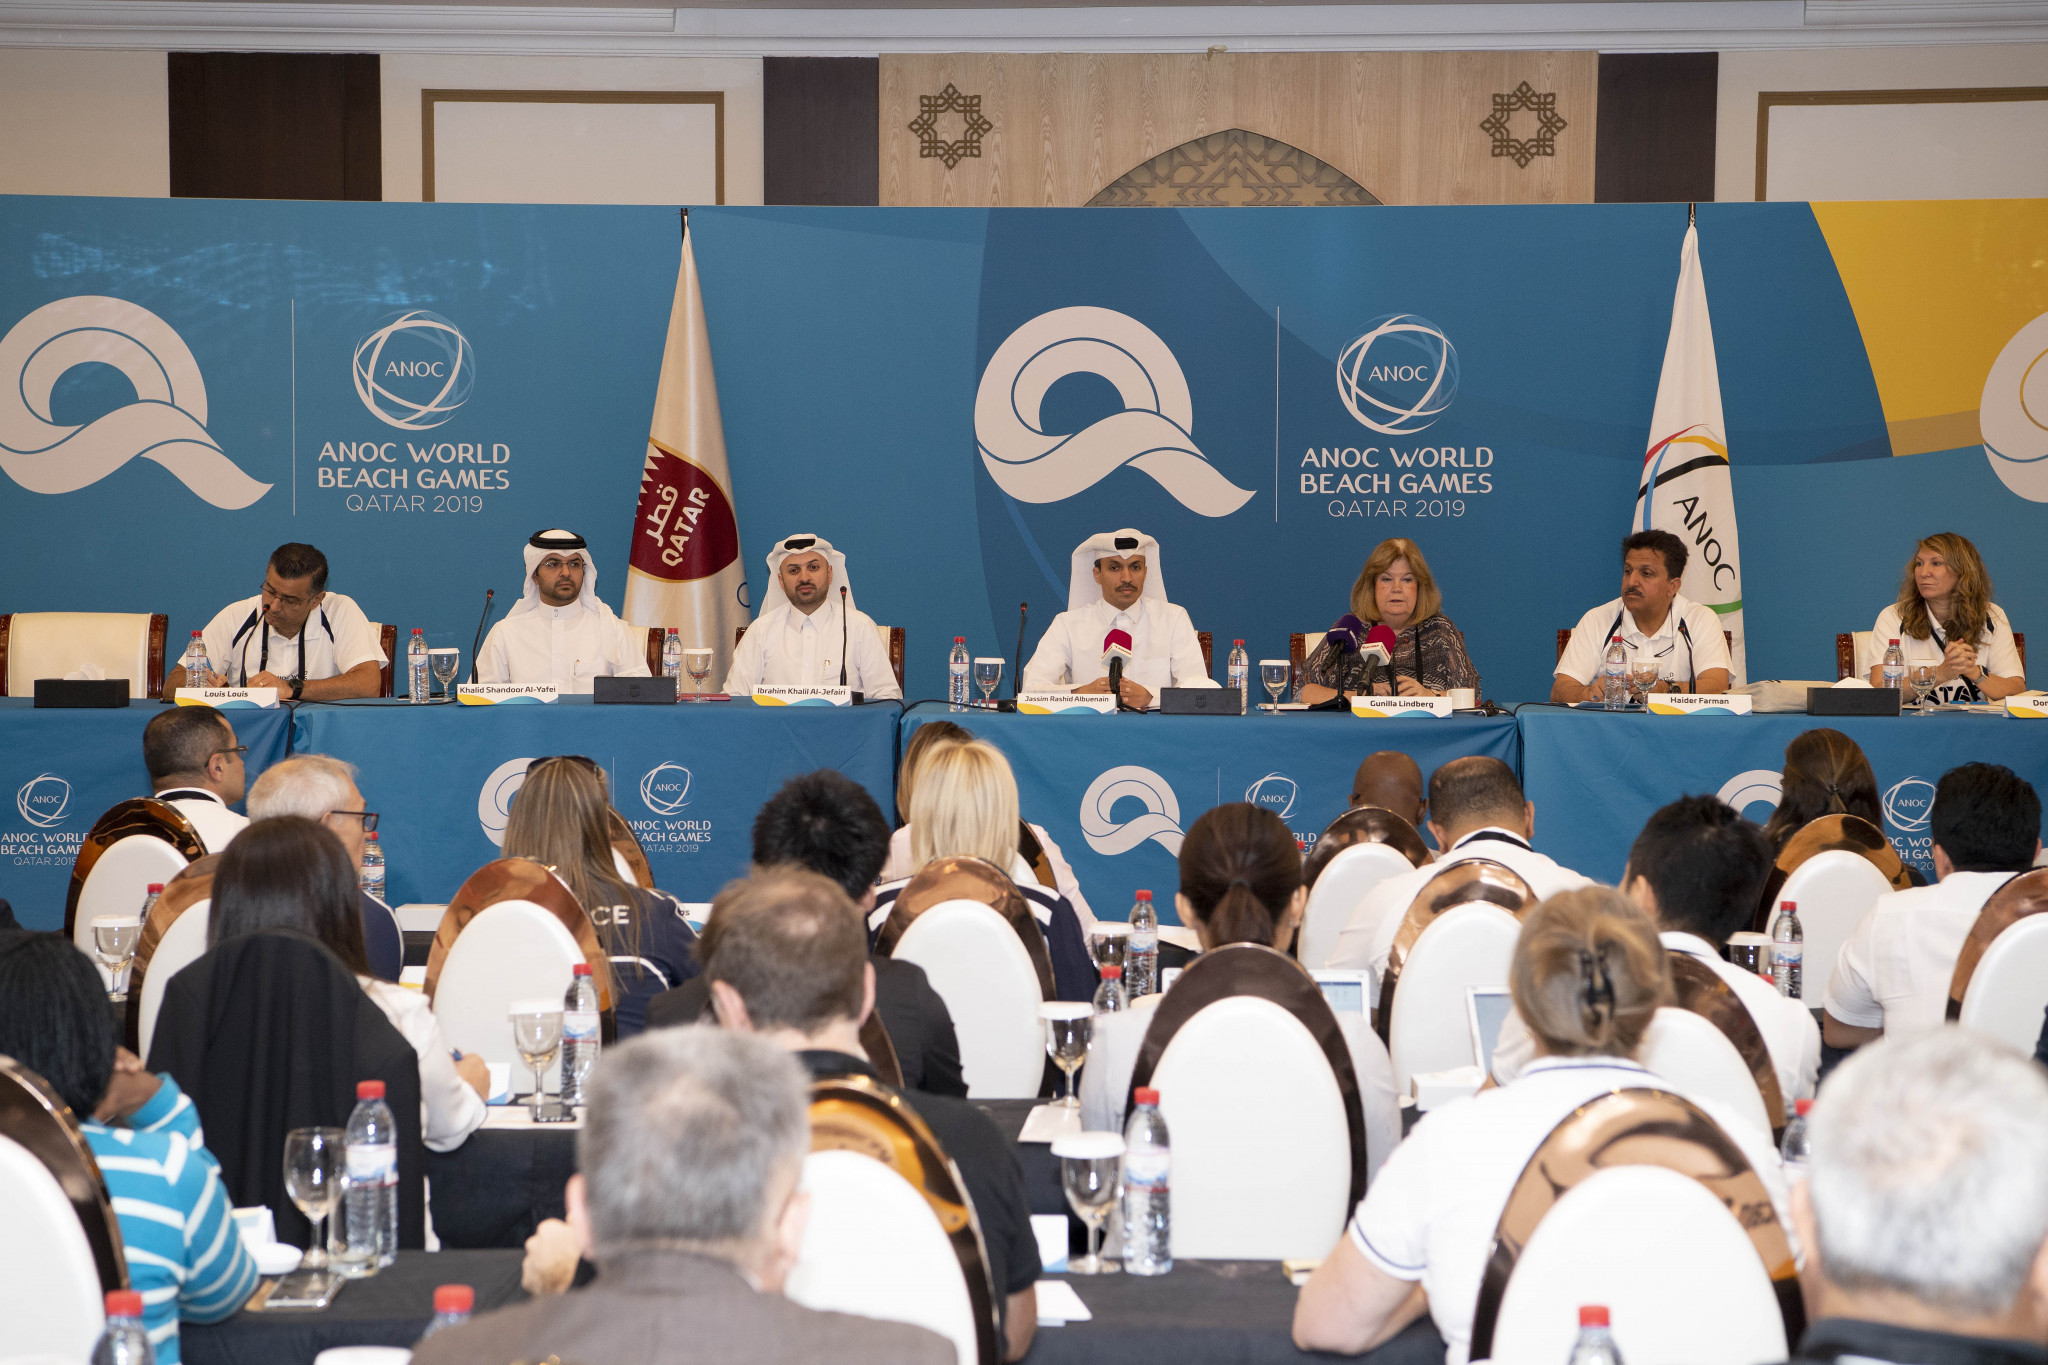 Chefs de Mission from 80 countries have inspected preparations for this year's ANOC World Beach Games in Qatar ©ANOC